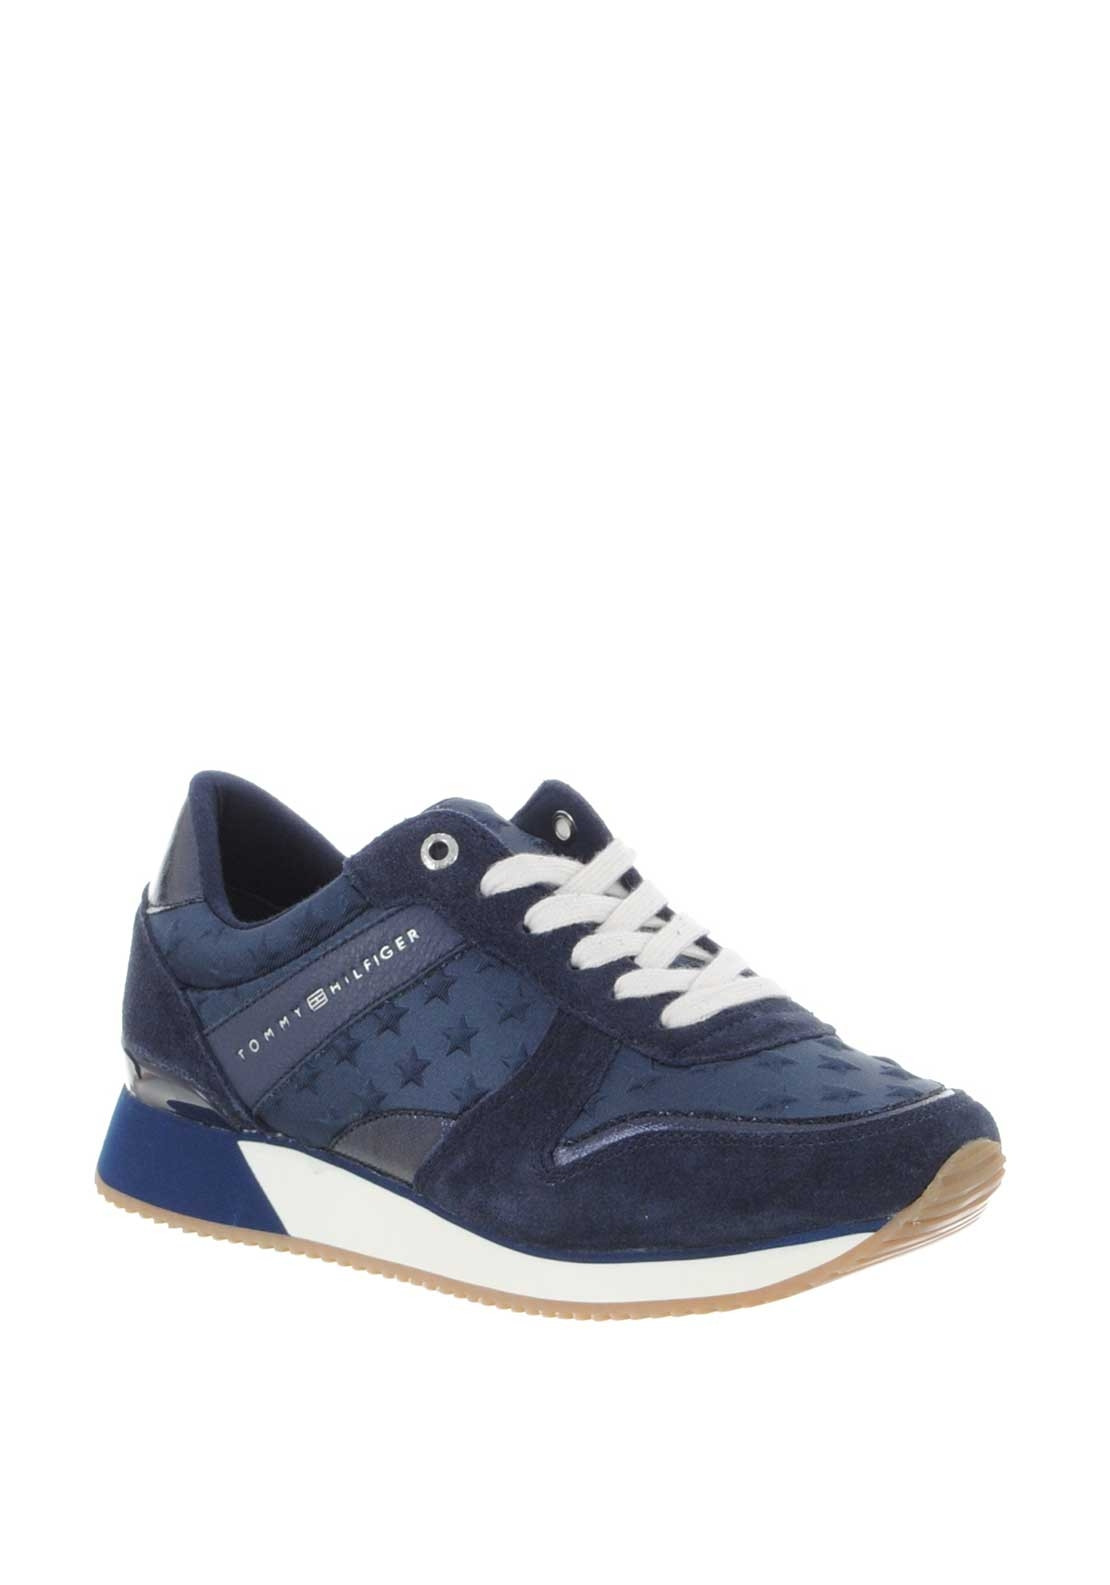 6072e0a73099 Tommy Hilfiger Women Star Leather Trainers